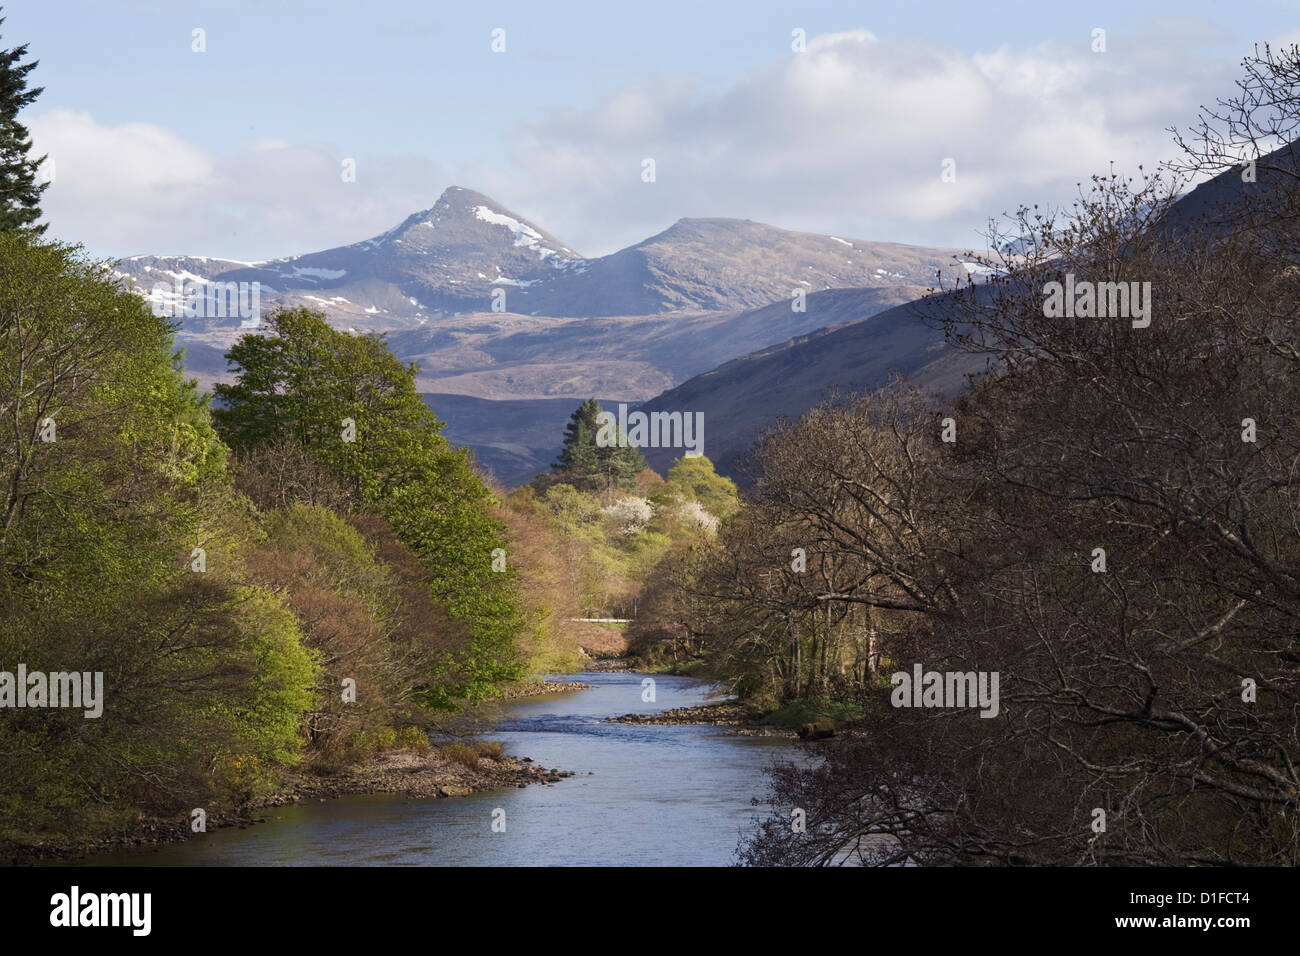 River Broom, near Ullapool, Wester Ross, Highlands, Scotland, United Kingdom, Europe - Stock Image